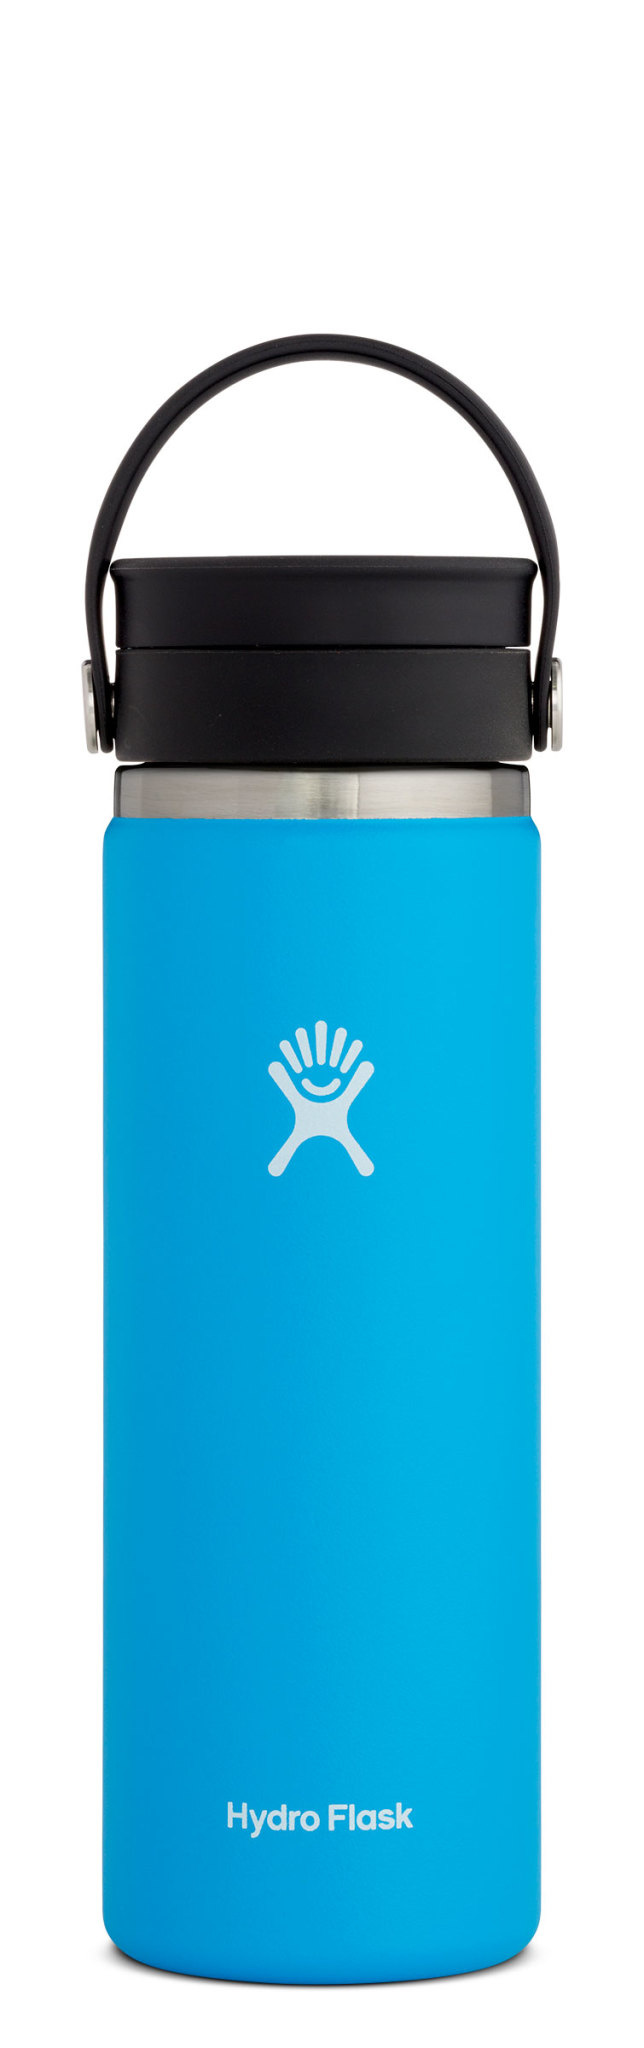 Hydro Flask 20oz Wide Mouth with Flex Sip Lid-4